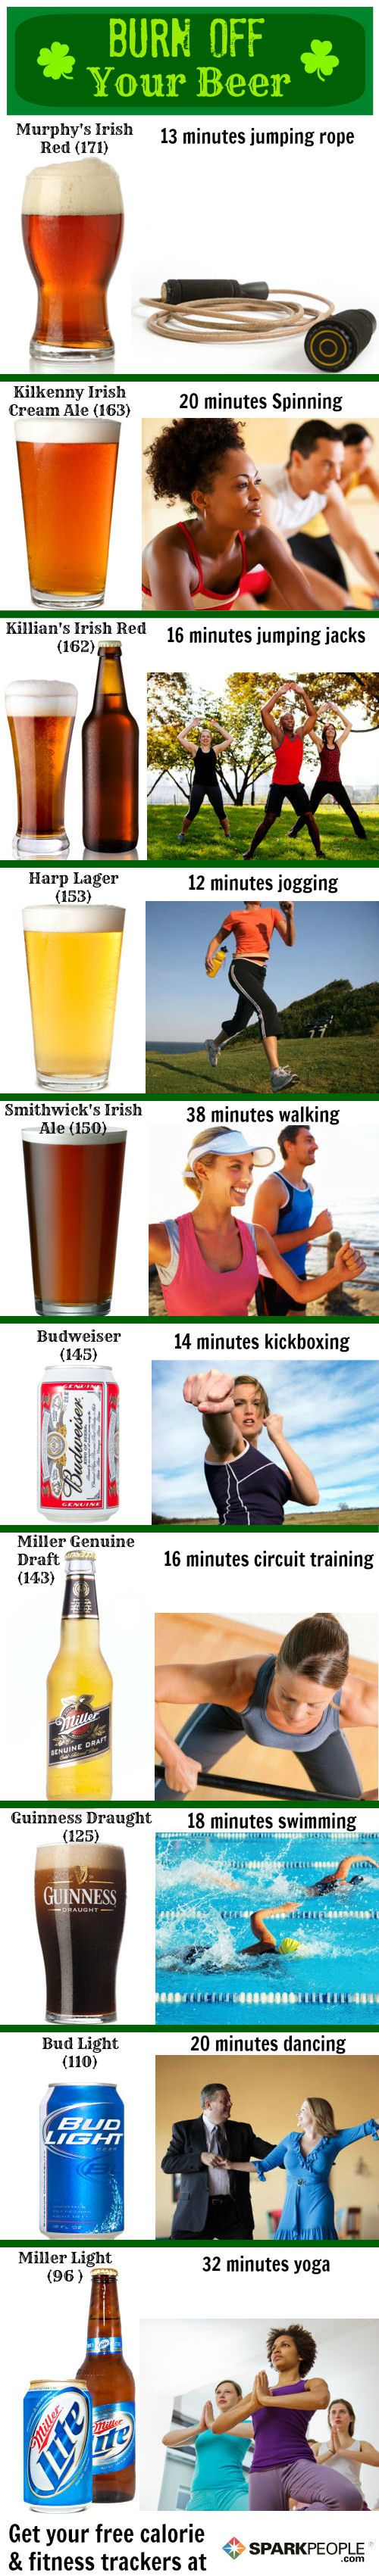 How to Burn Off the Beer - Infographic